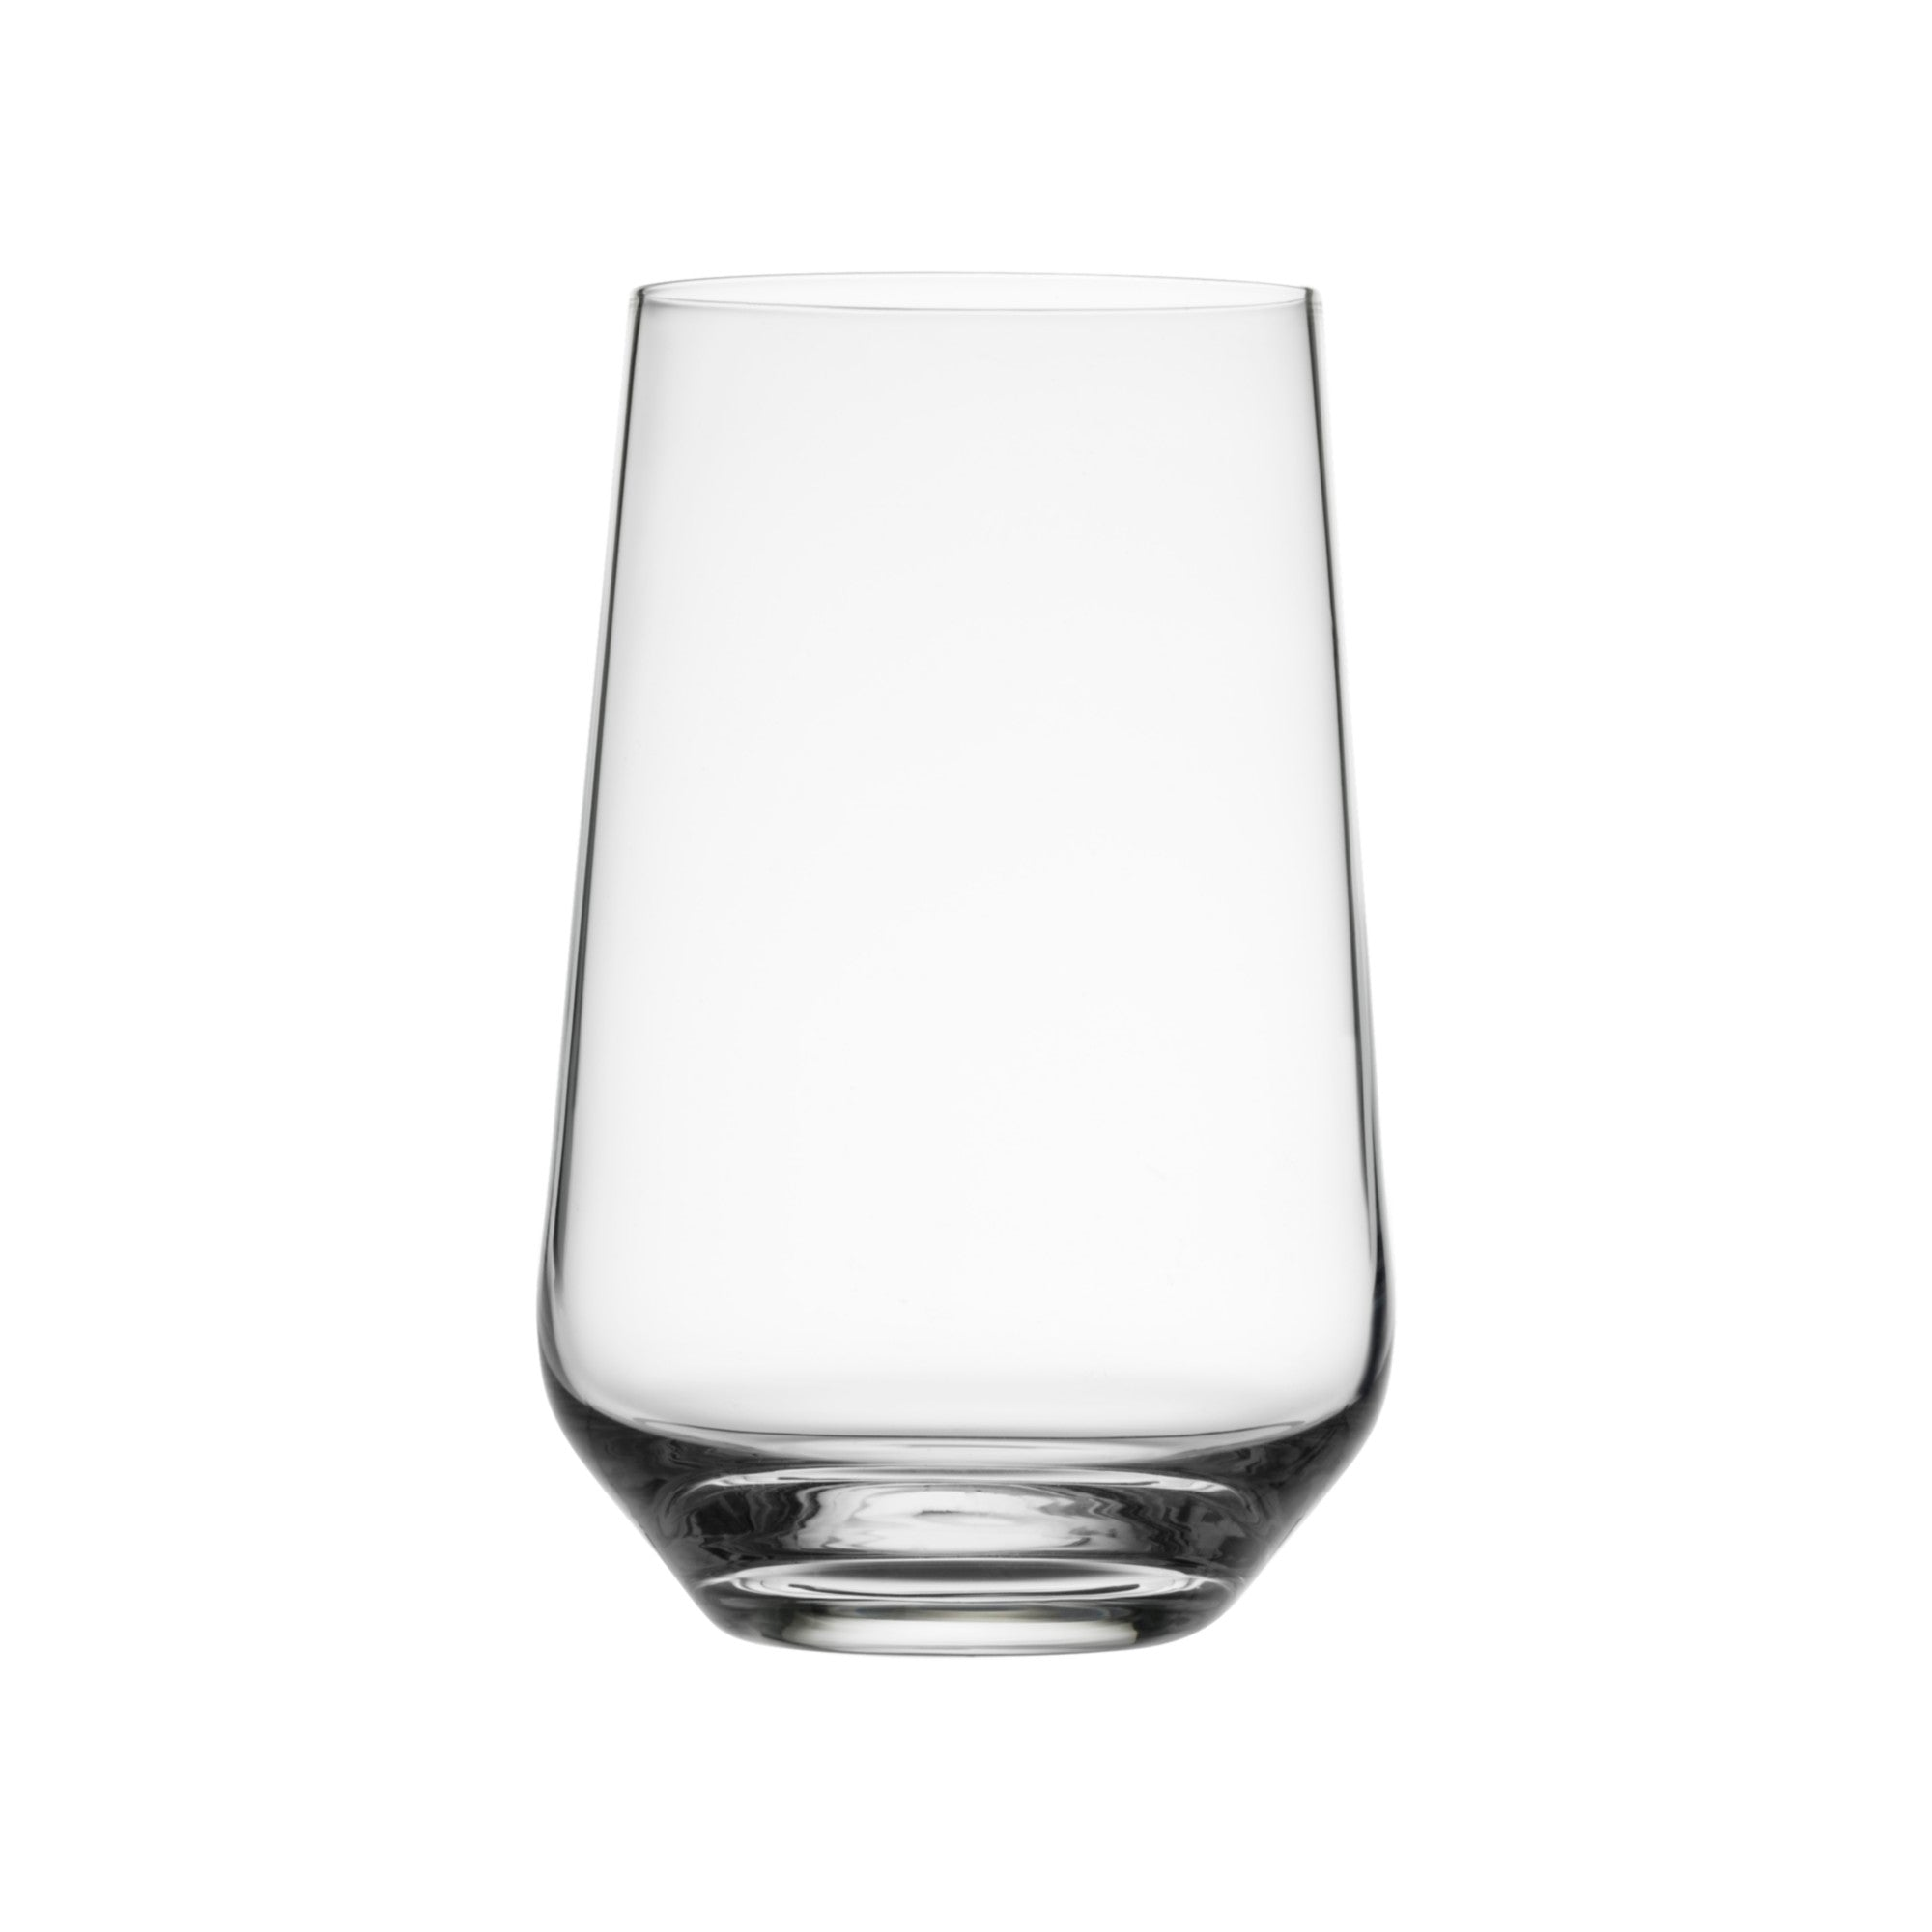 Iittala Essence Universal Glasses